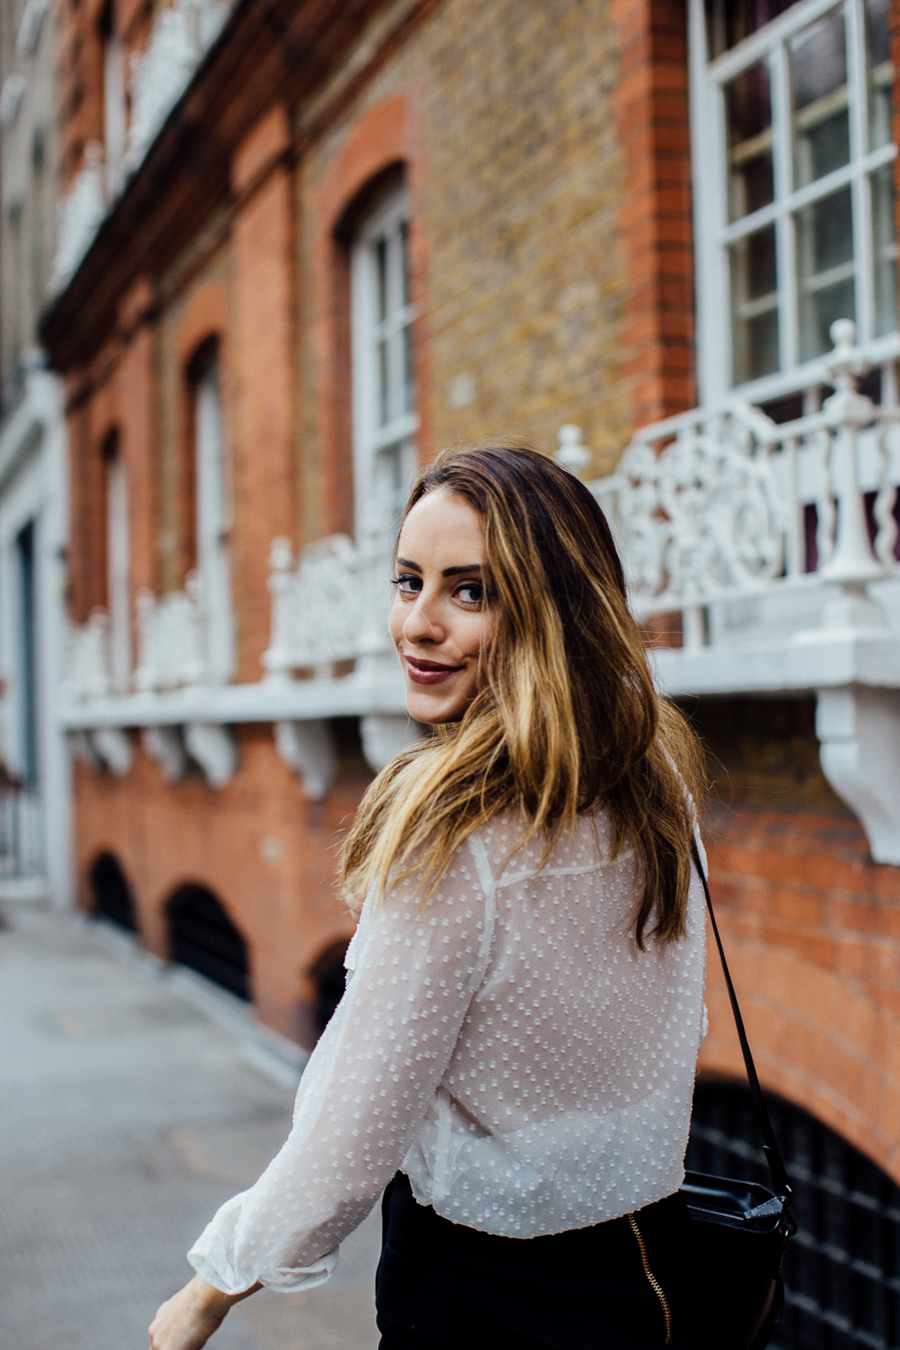 sabrina-chakici-clutch-and-carry-on-clutch-carry-on-uk-travel-blogger-uk-style-blogger-folli-follie-itsallinthedetails-iamfollifollie-24